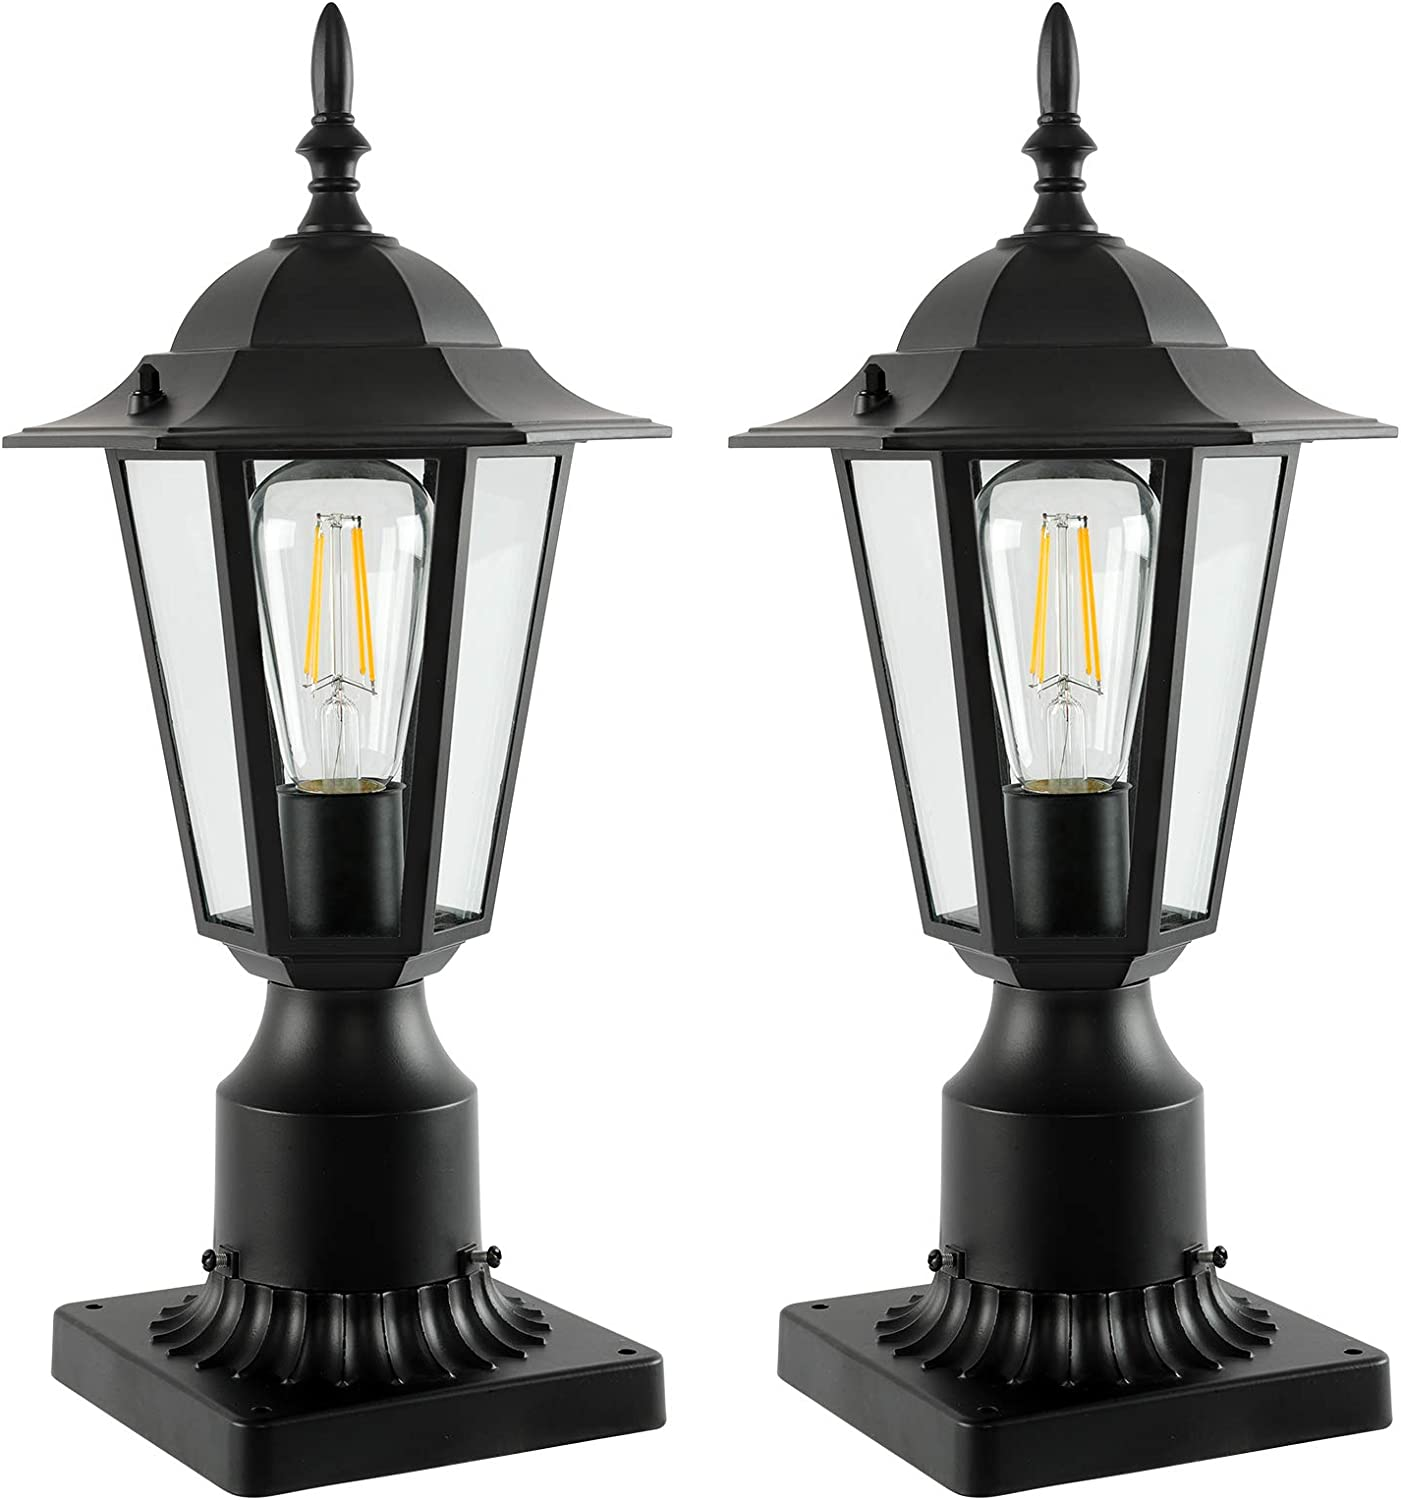 FAGUANGAO Quantity limited Outdoor Post Light Fixtures with Mount Max 40% OFF Pier Black Base